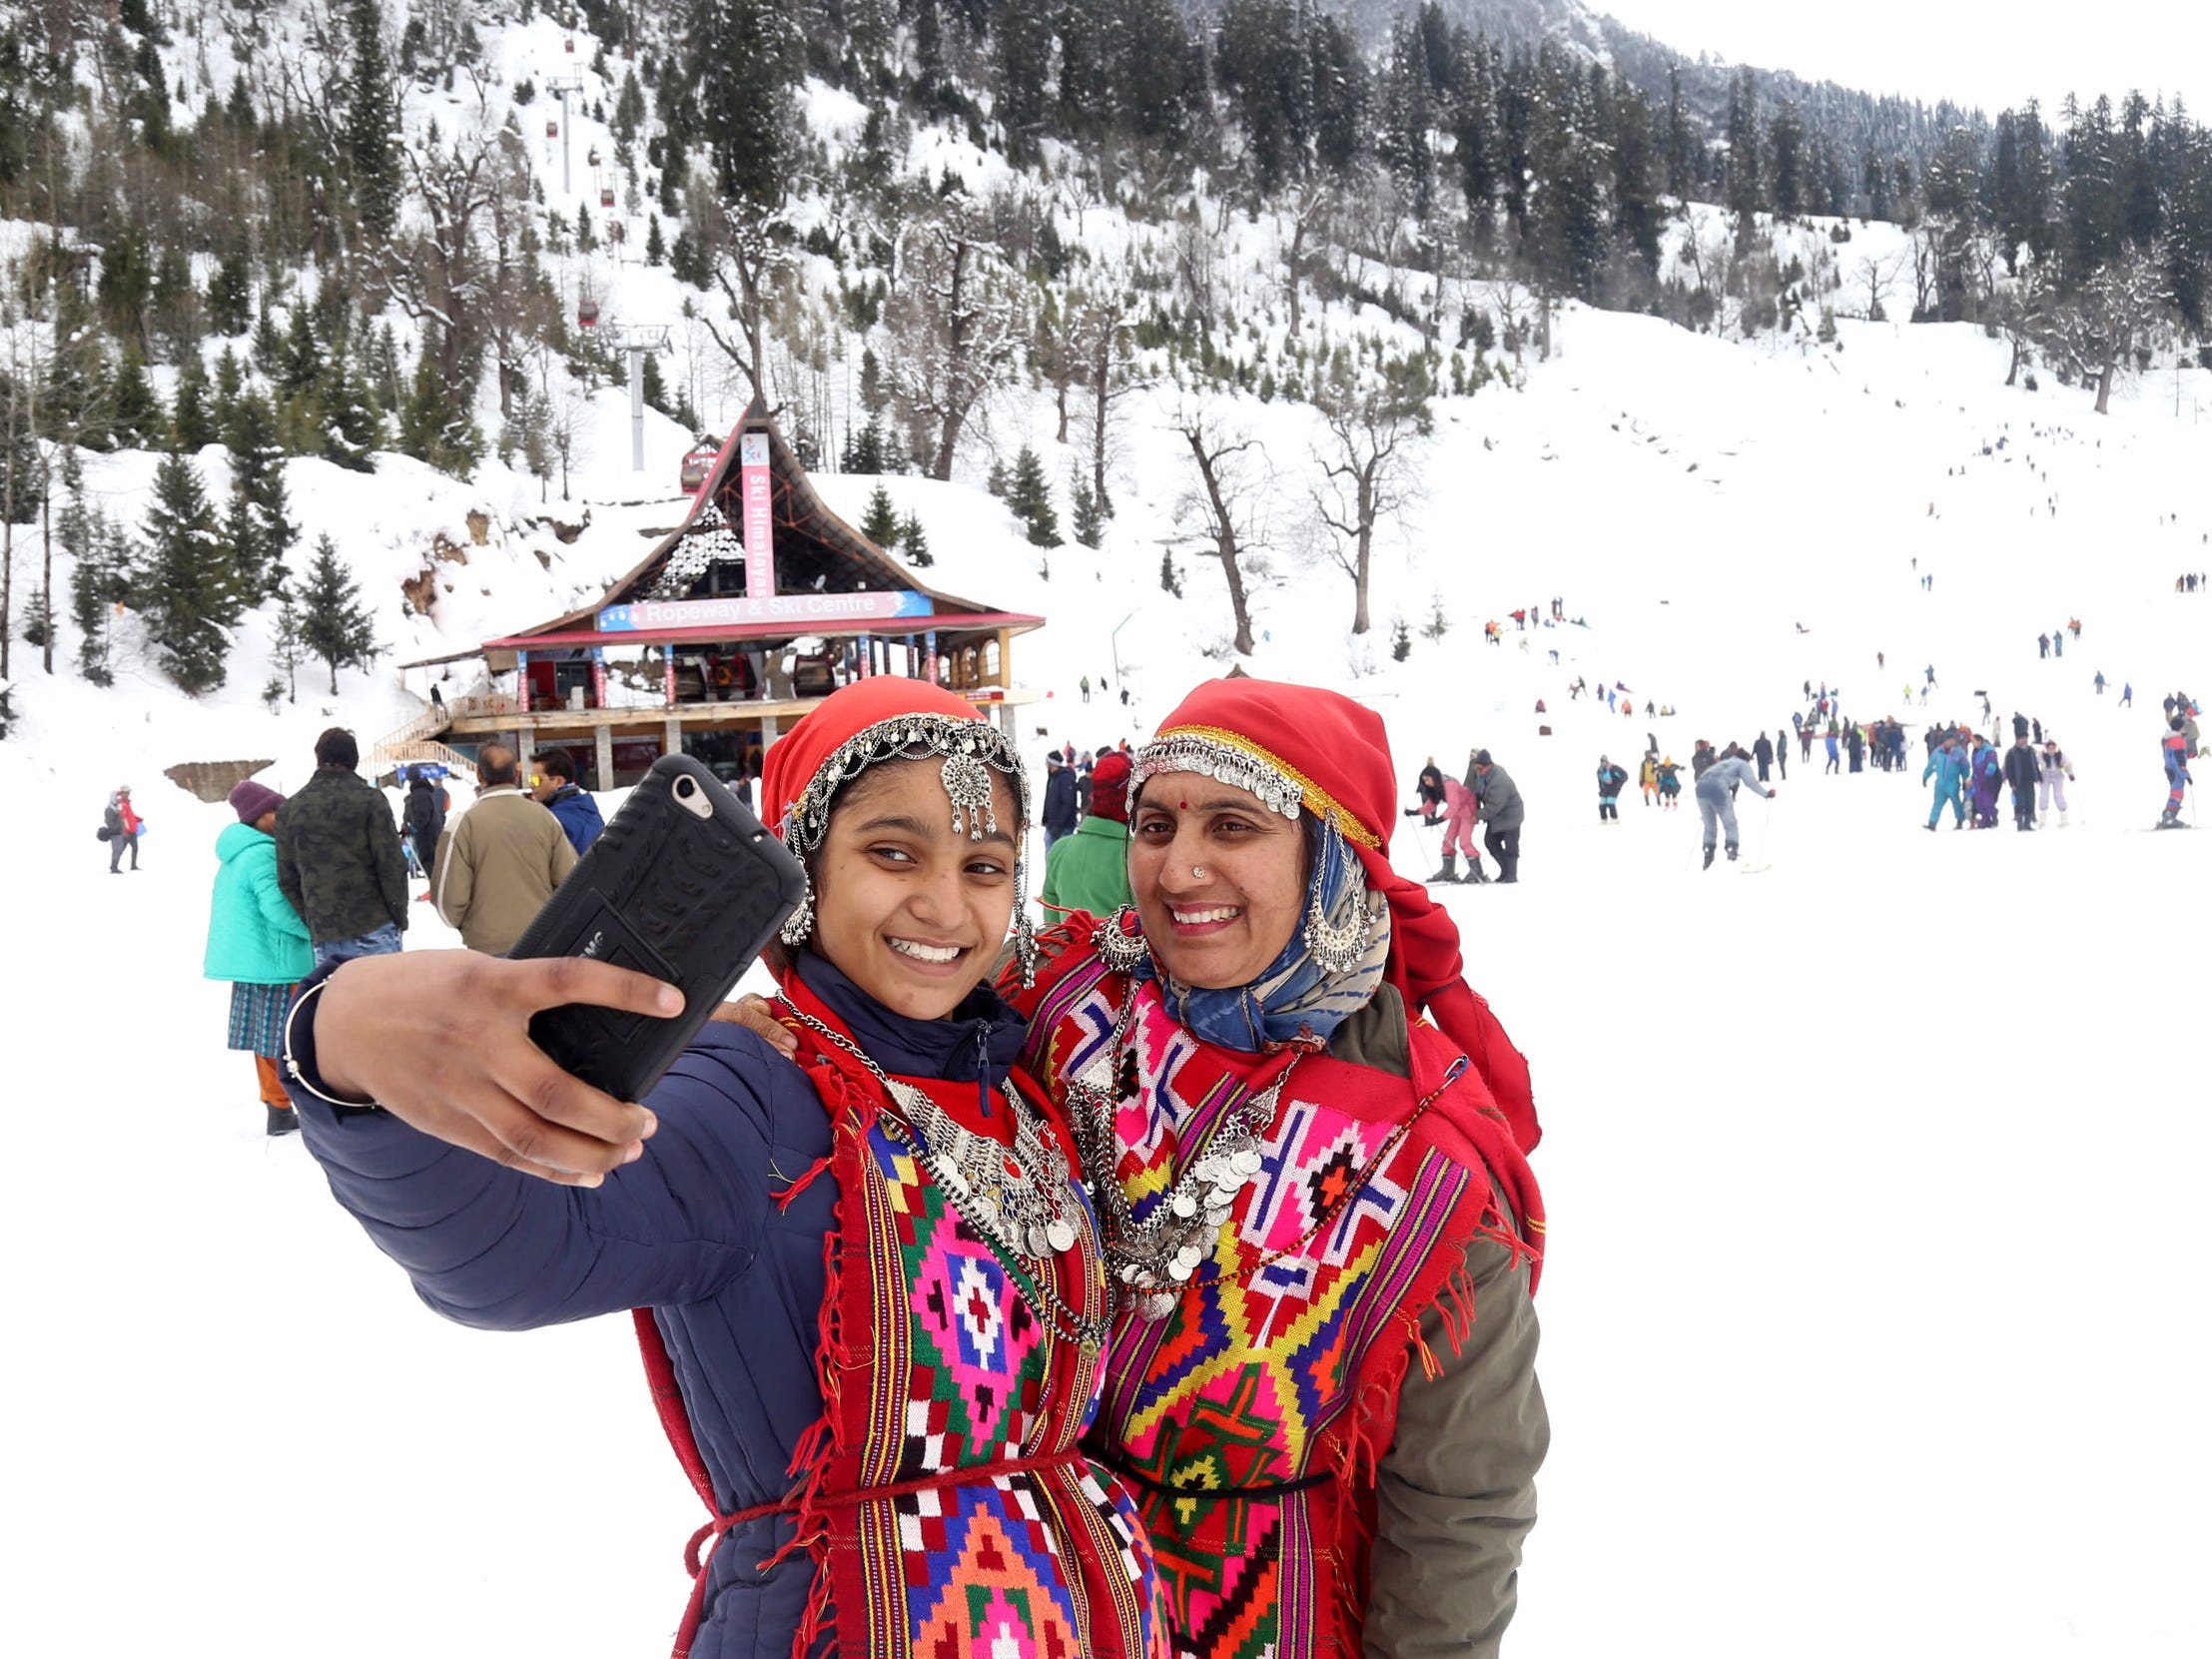 Women wearing traditional Himachali attire take selfies in the snow covered Solang Nala area near Manali, India, Jan. 8, 2019.